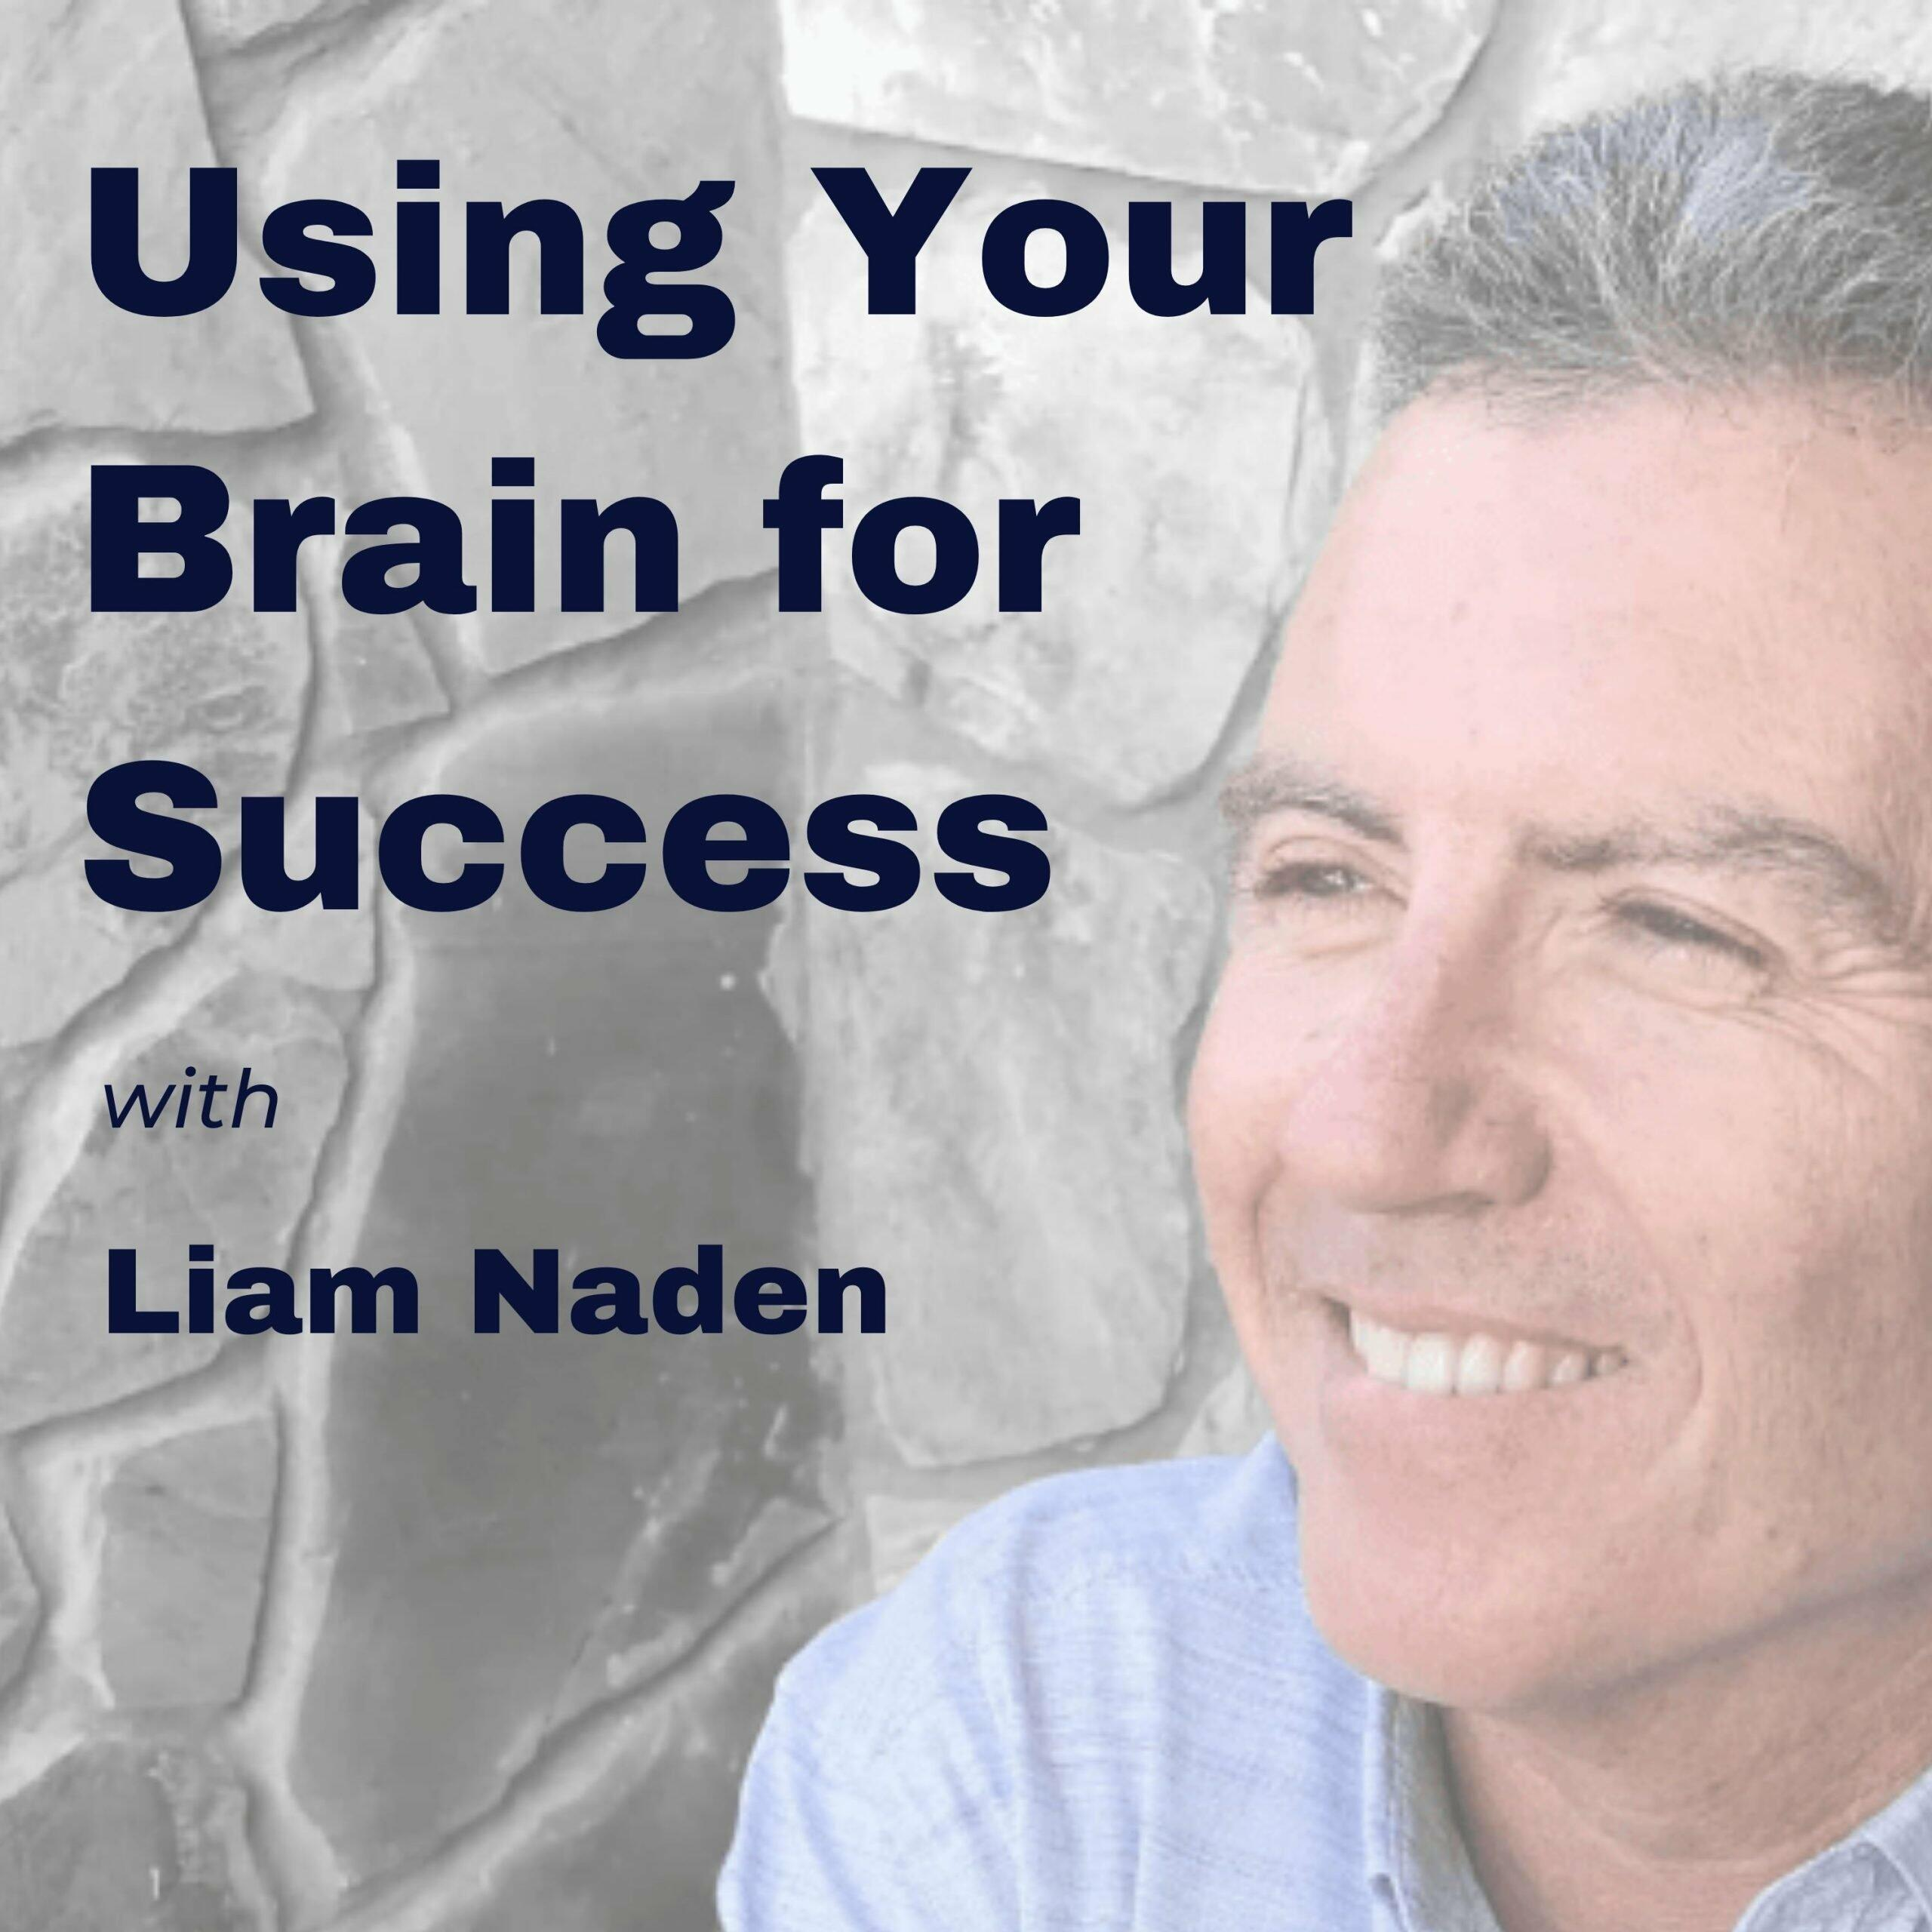 Using Your Brain for Success